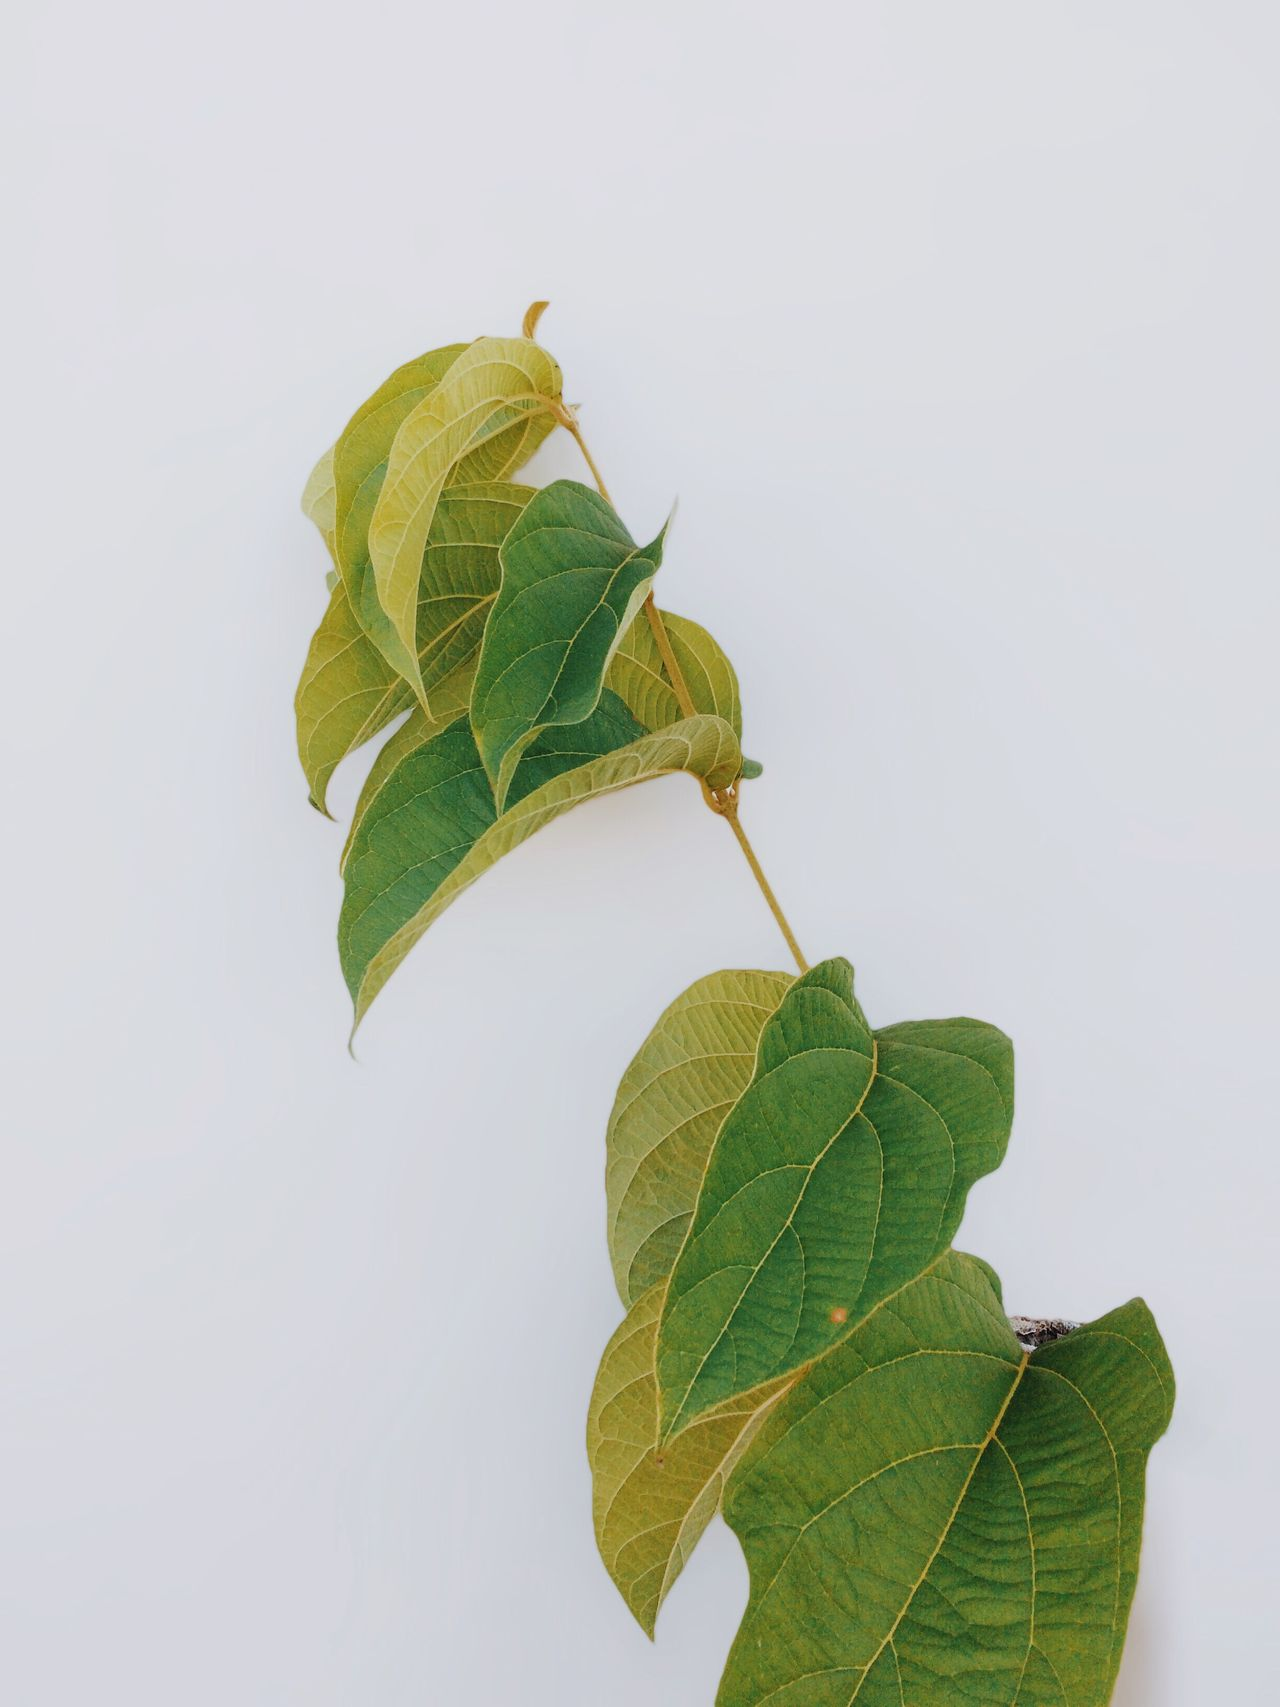 Leaf Green Color Freshness Studio Shot Nature Close-up Food Gray Background Plant No People Growth Healthy Eating Tree Day